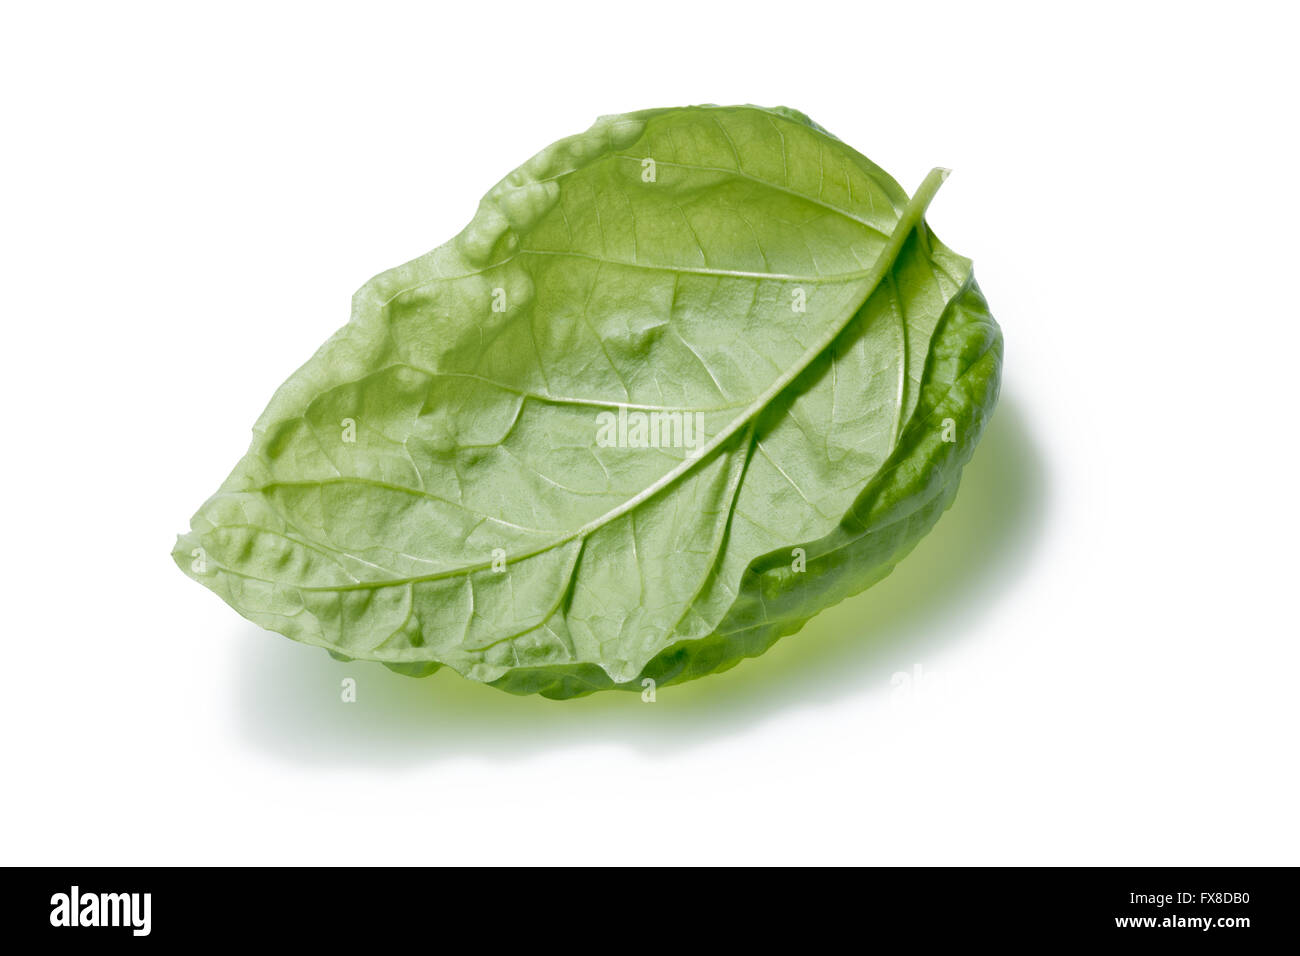 Single large basil leaf, overturned. Bolloso Napoletano cultivar. Separate clipping paths for both leaf and shadow, - Stock Image